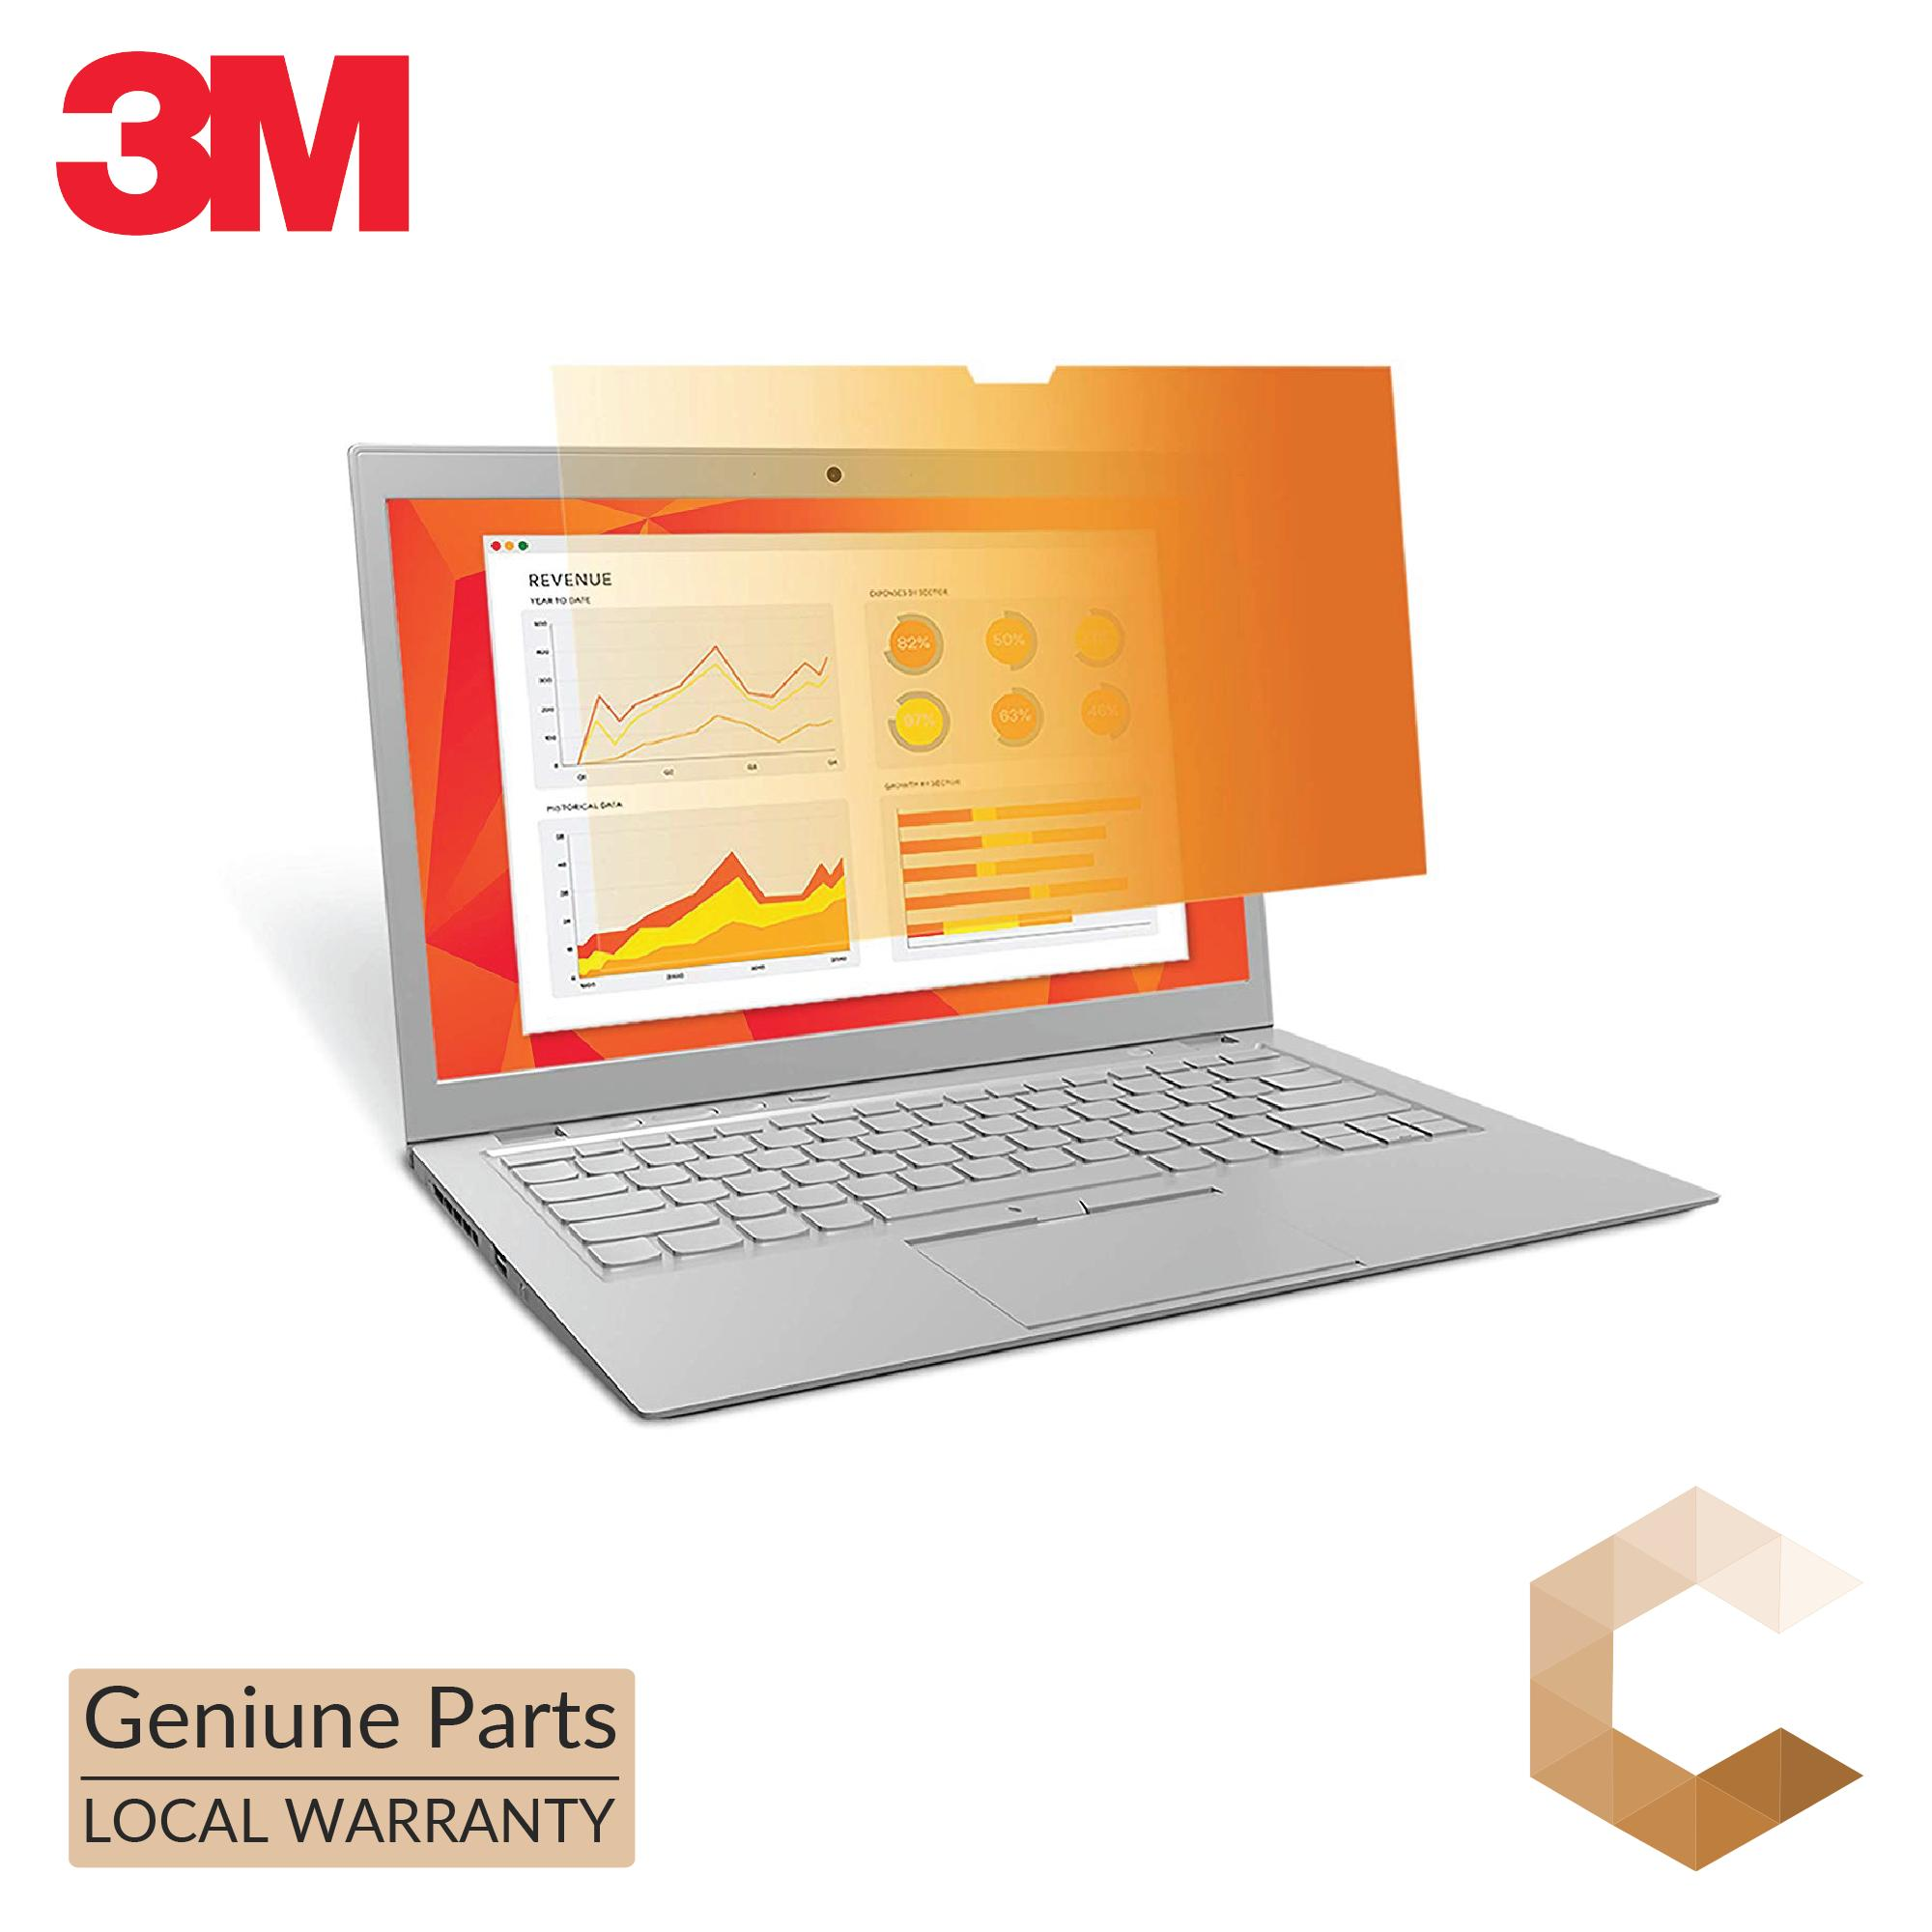 3M™ Gold Touch Privacy Filter for 14.0 Full Screen Laptop (16:9 aspect ratio)